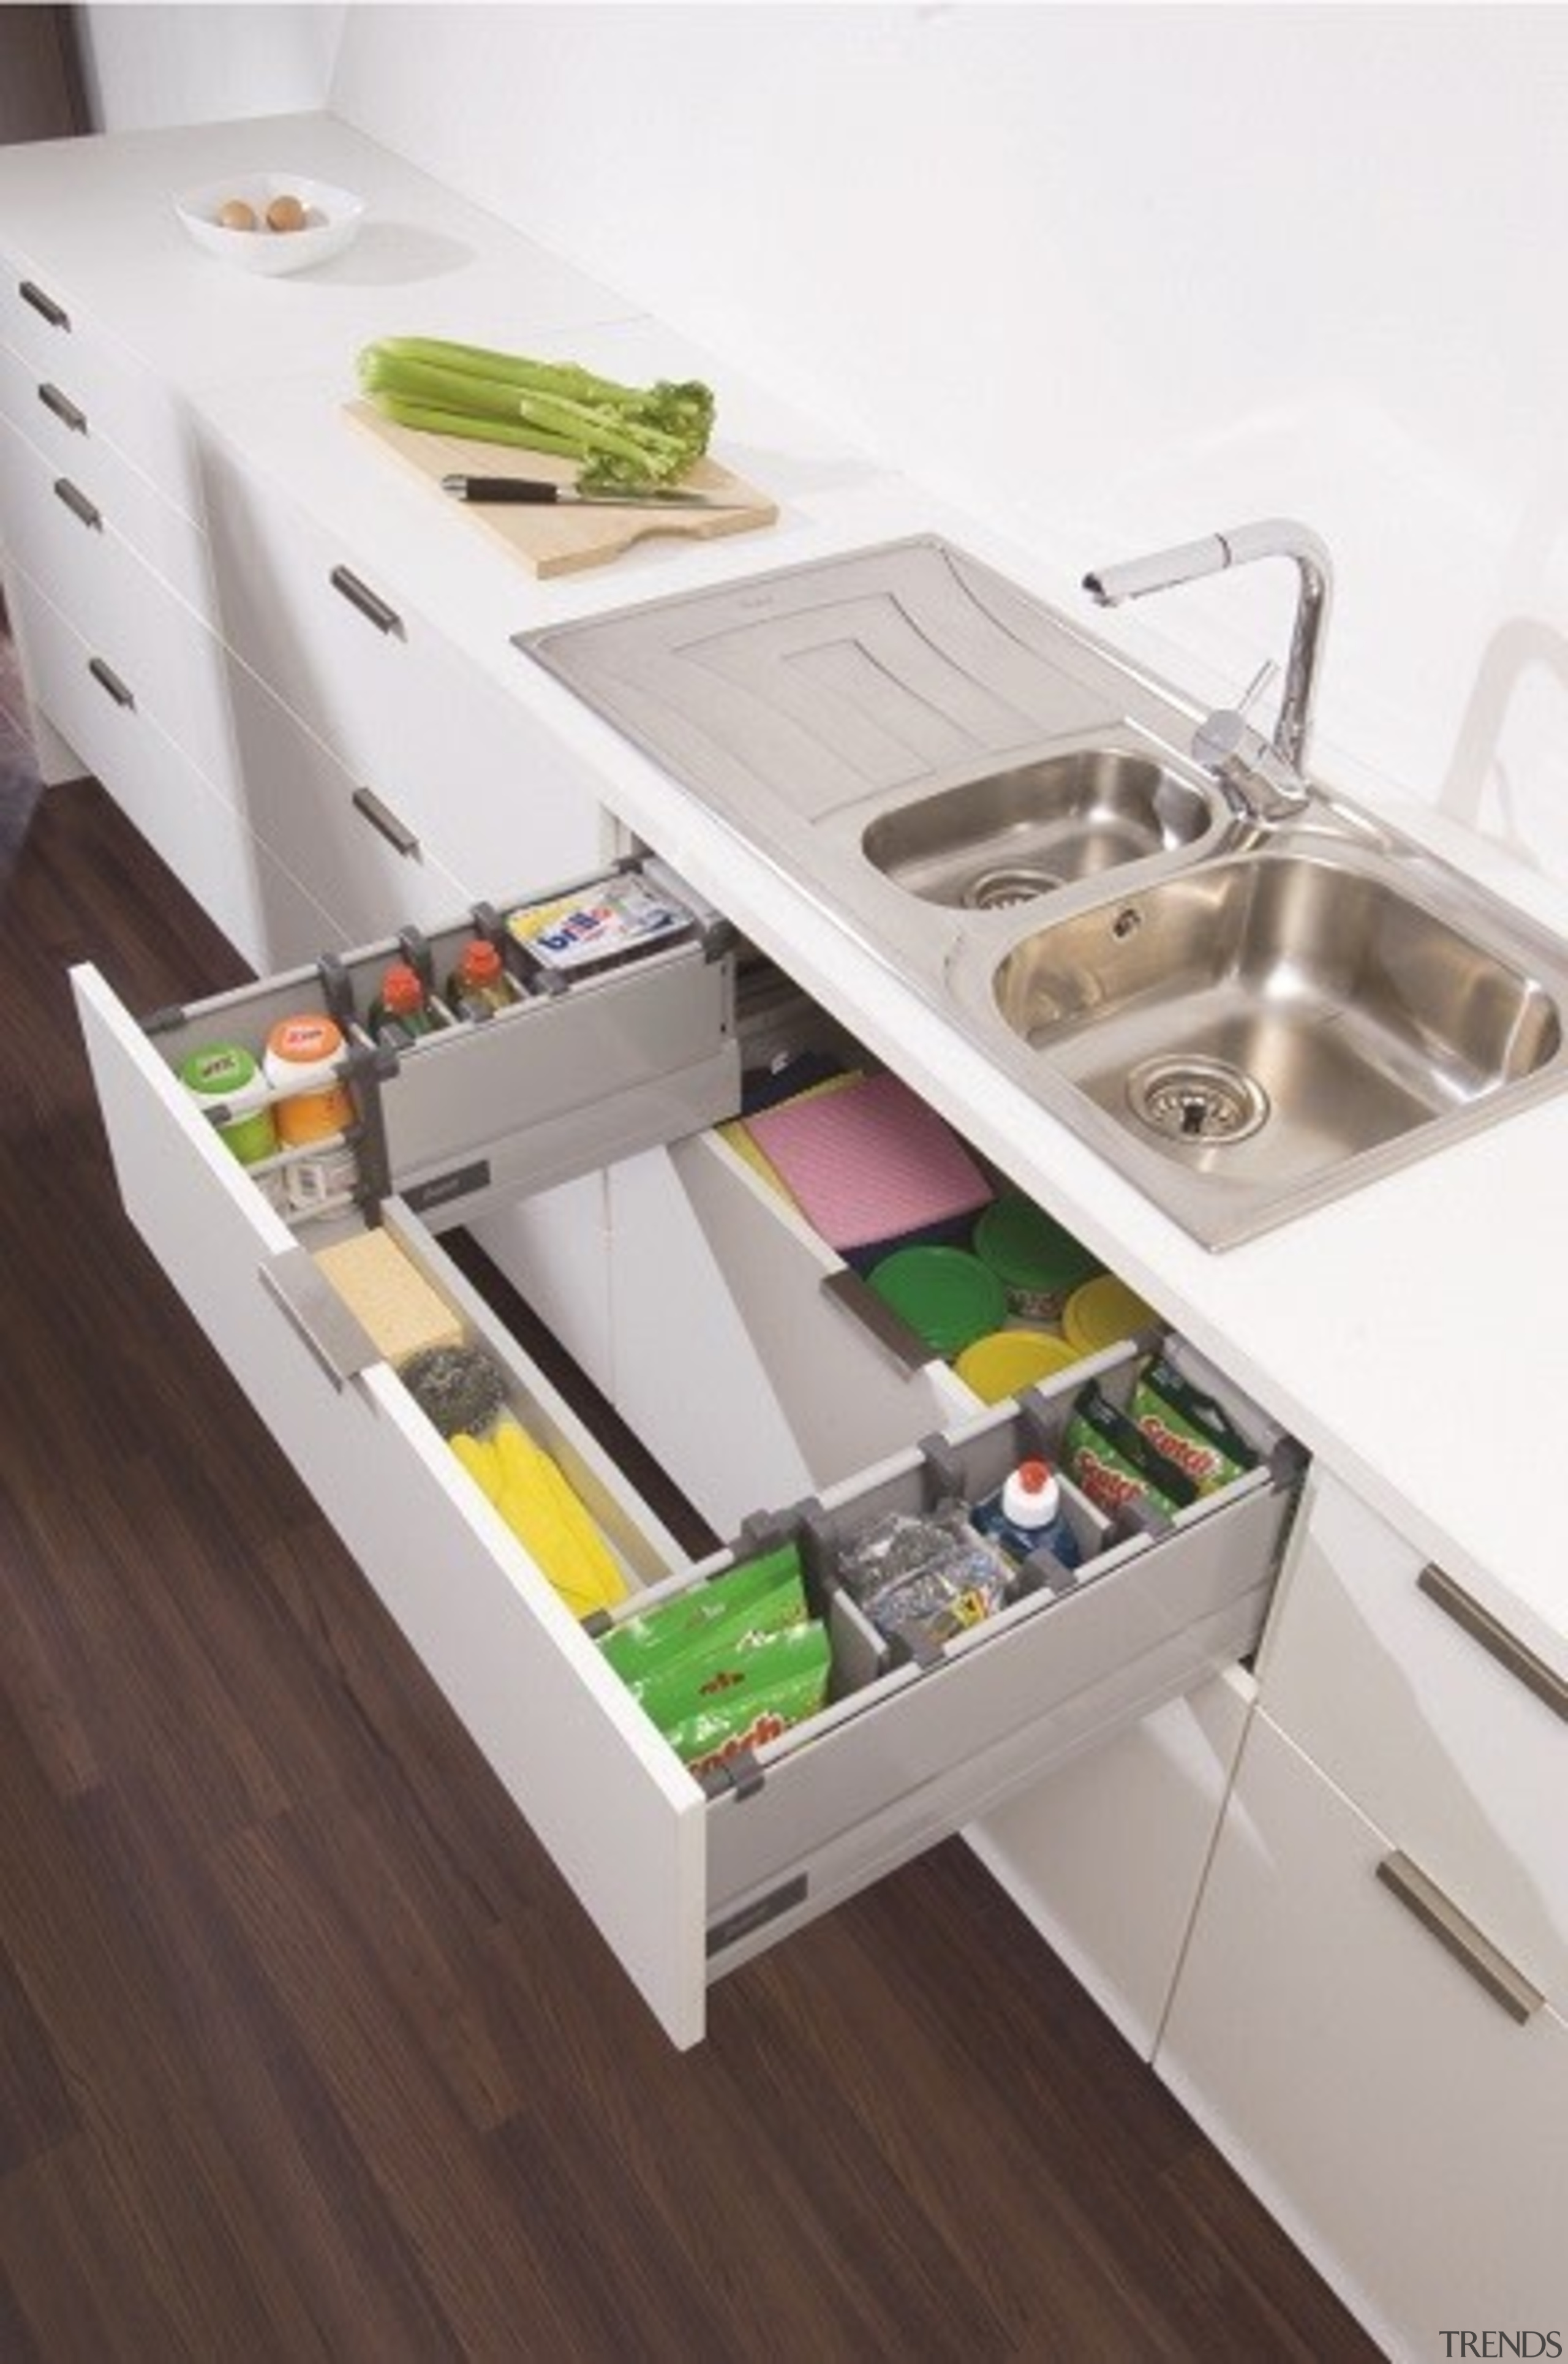 Make use of that otherwise wasted space under countertop, drawer, furniture, kitchen, plumbing fixture, product design, sink, table, tap, white